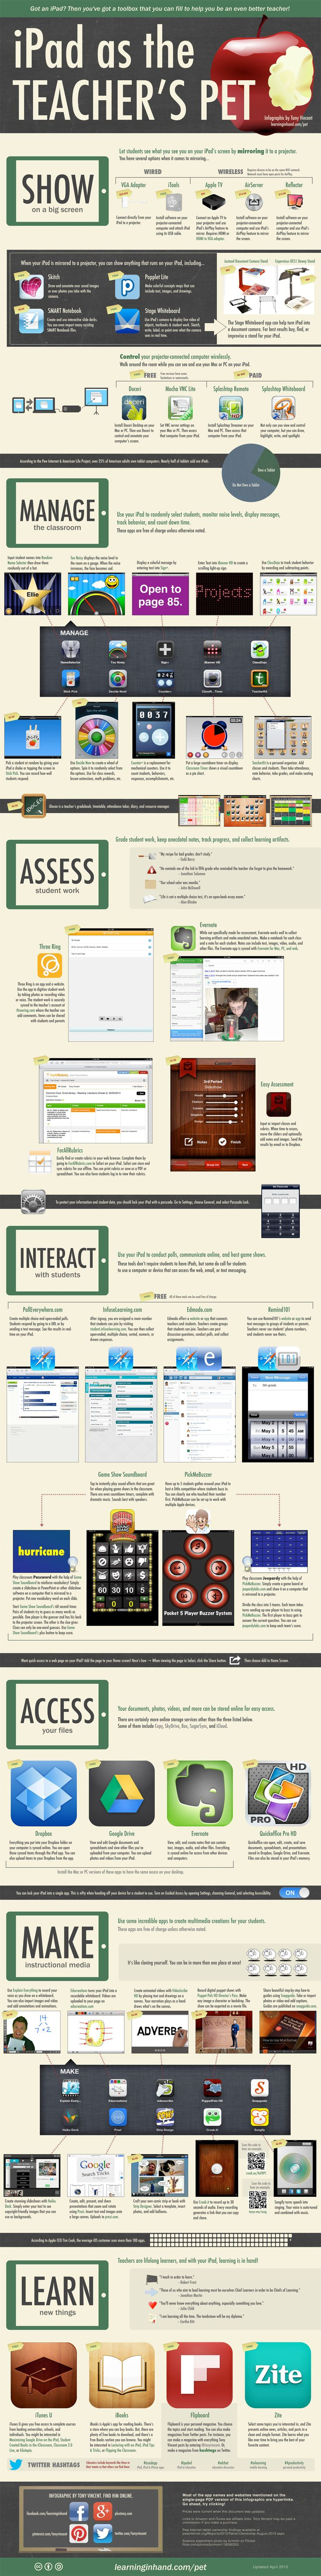 There are SO many ways to use your iPad. Read all about the VERBS in this article, things you can do to actively engage your students in class. Technology is not effective unless you work to take advantage of all the apps that are offered and use them as a tool to assist your students' in learning.